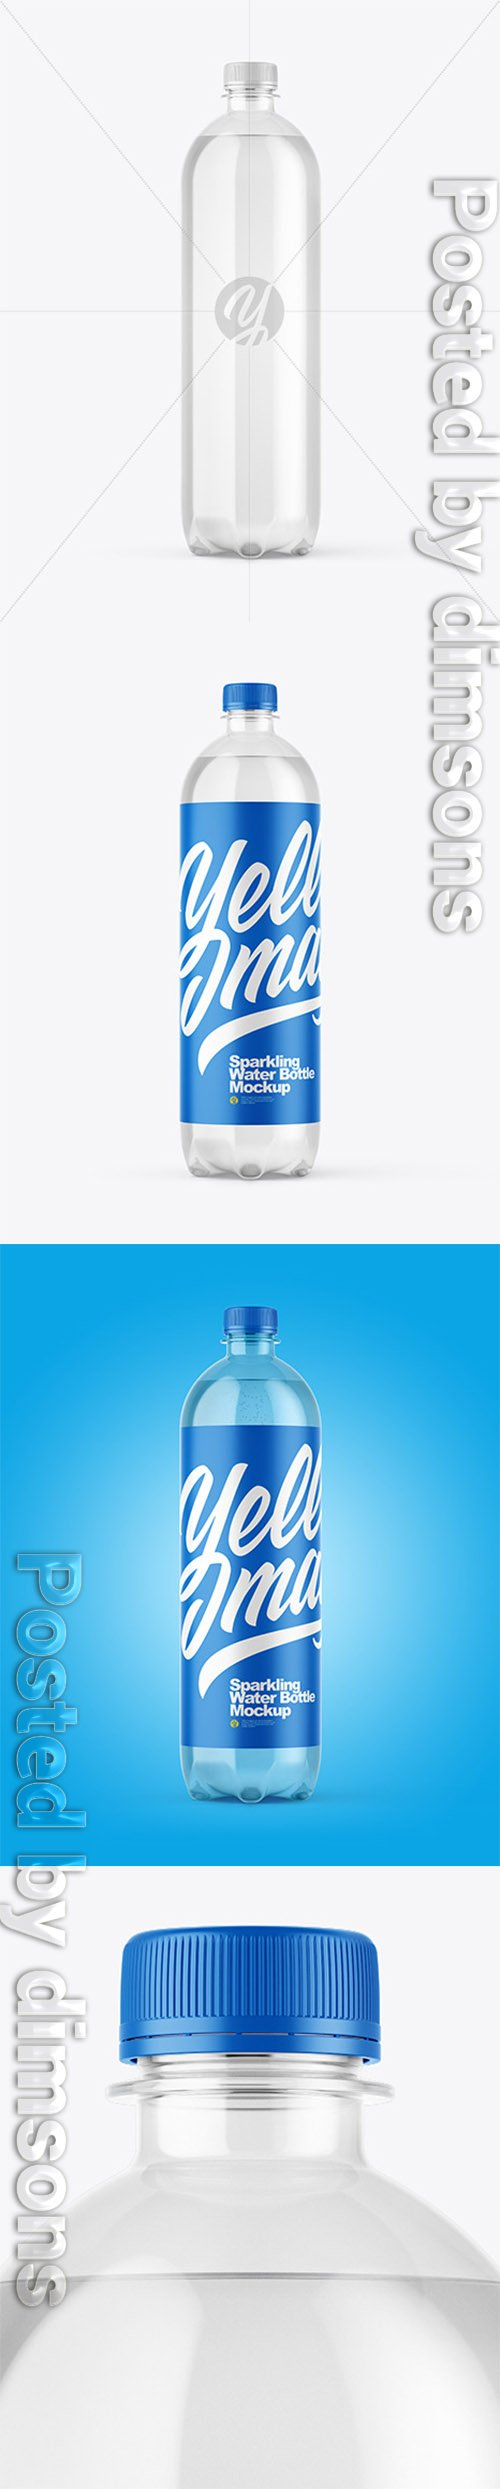 Clear Plastic Water Bottle Mockup 37815 TIF